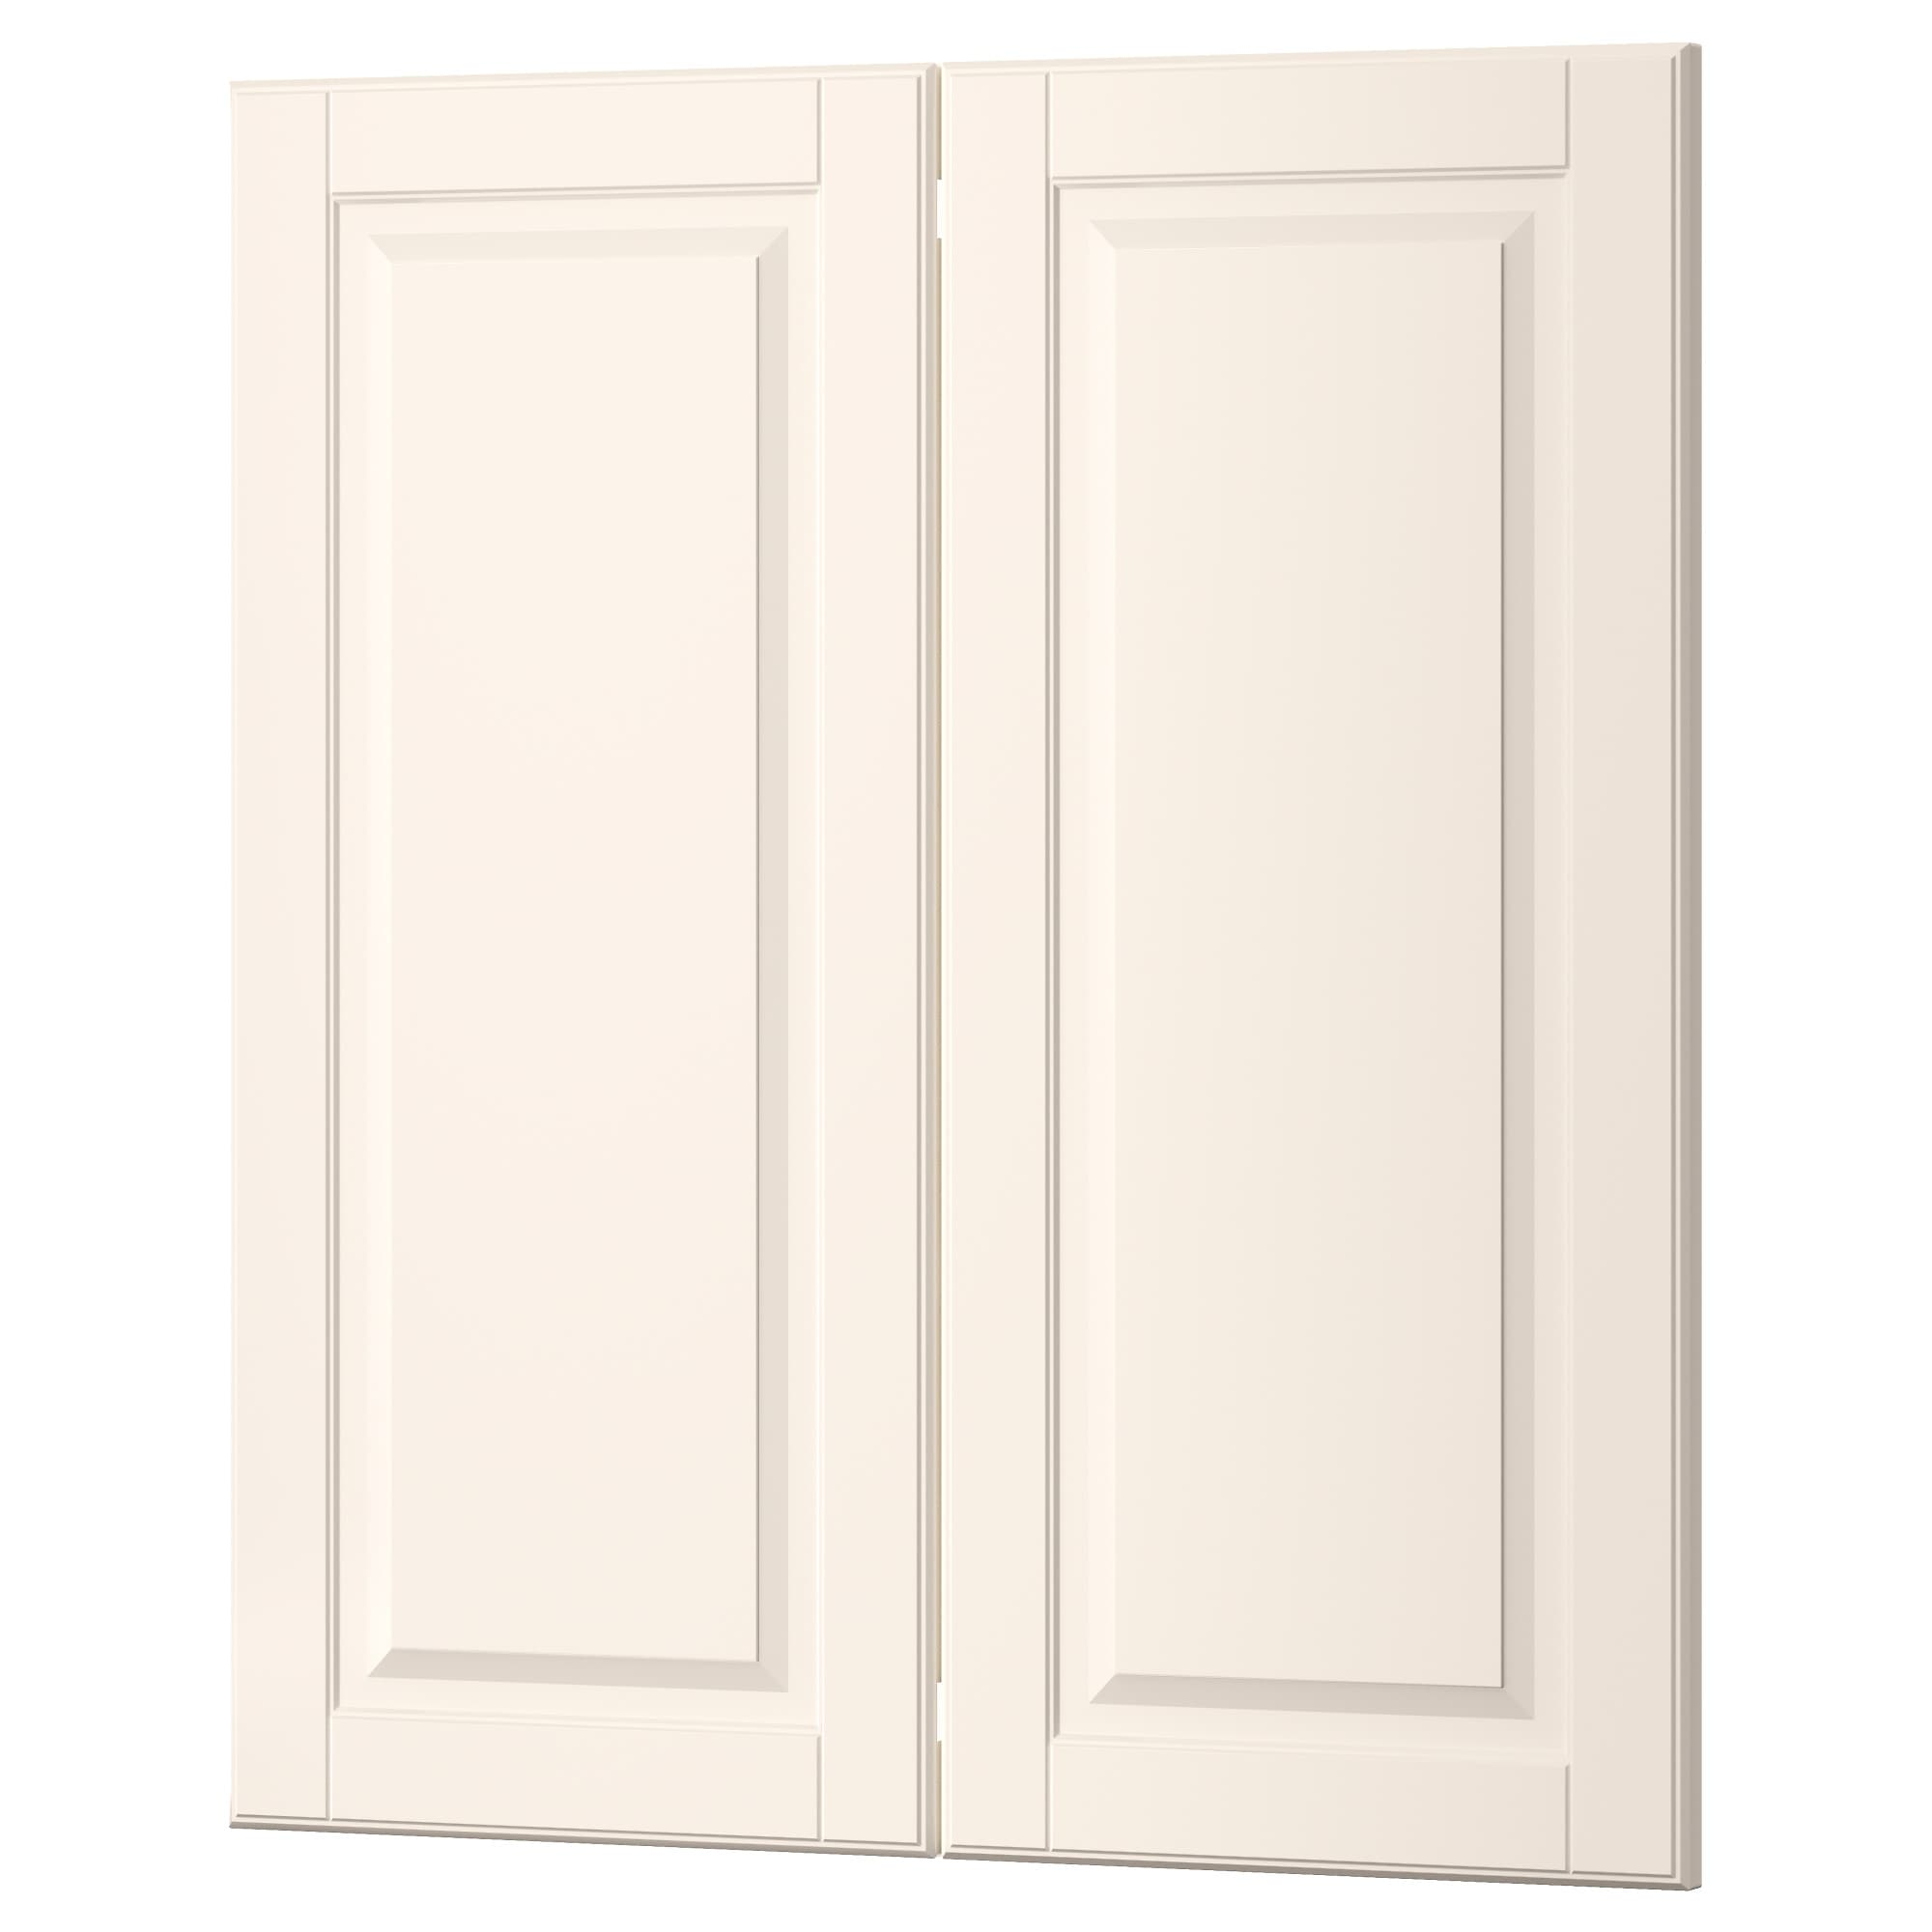 replacement doors thomasville kitchen cabinet replacement. Black Bedroom Furniture Sets. Home Design Ideas